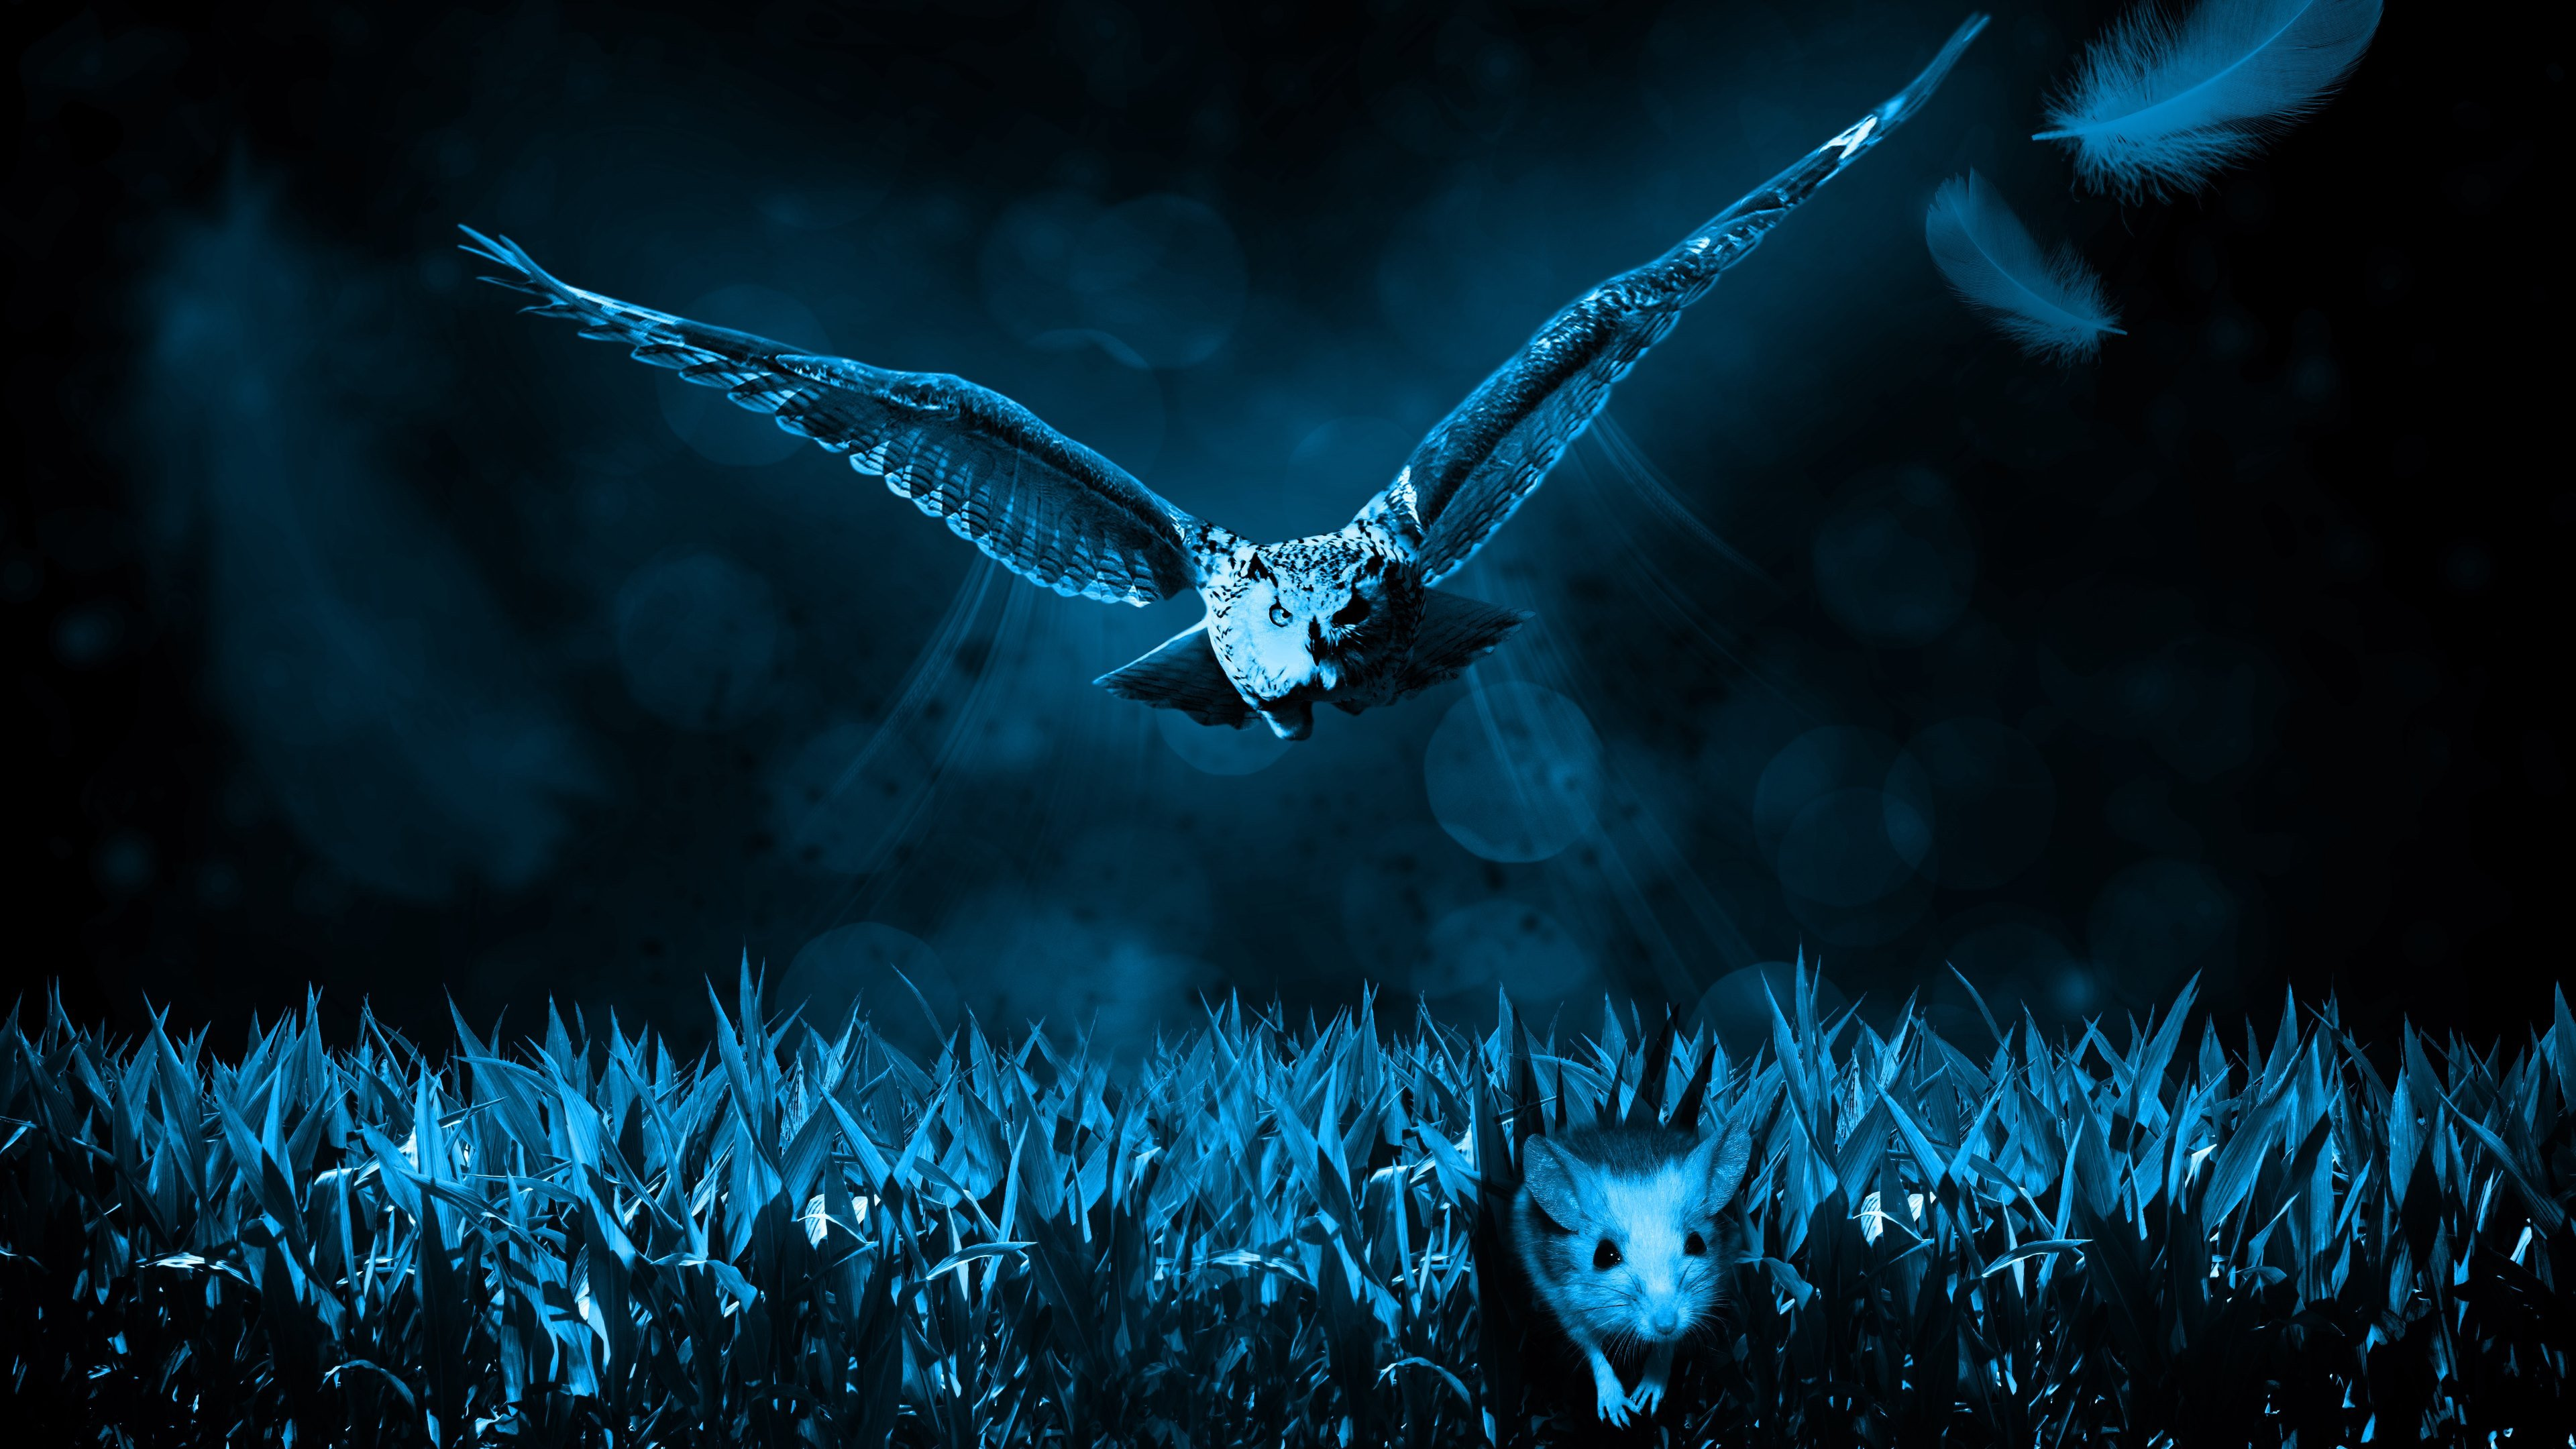 4k owl wallpaper   wallpapersafari